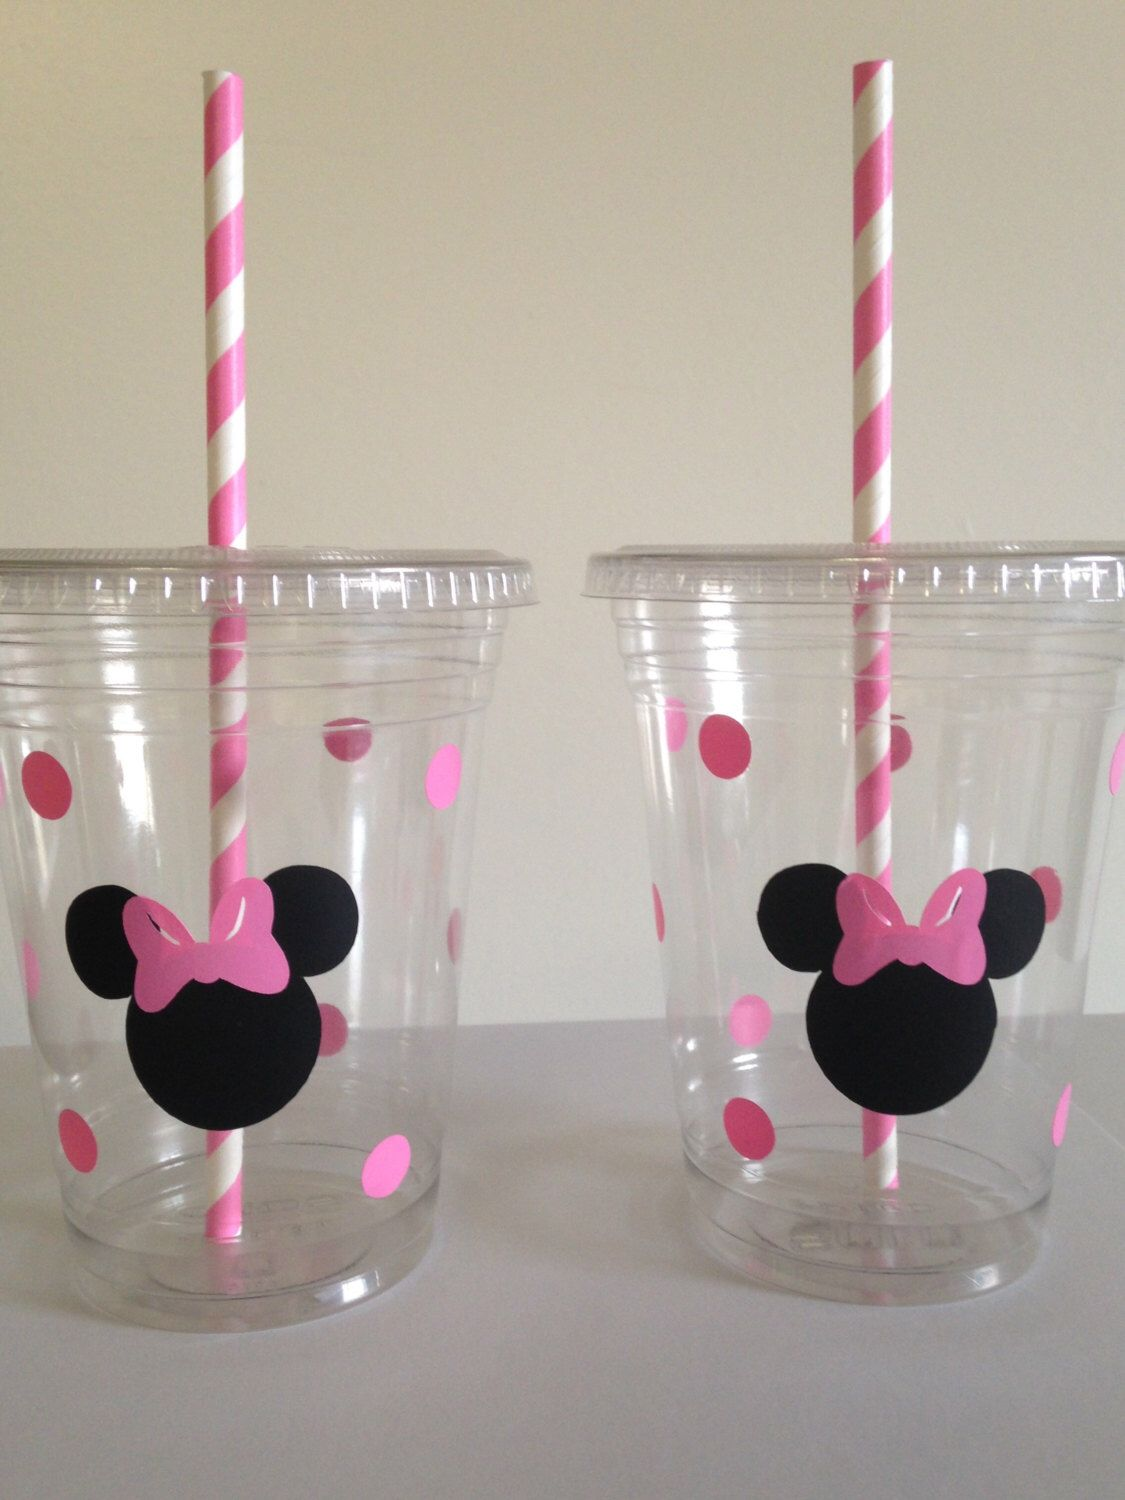 Minnie Mouse Party Cups (Pink or Red) by DivineGlitters on Etsy https://www.etsy.com/listing/226258229/minnie-mouse-party-cups-pink-or-red